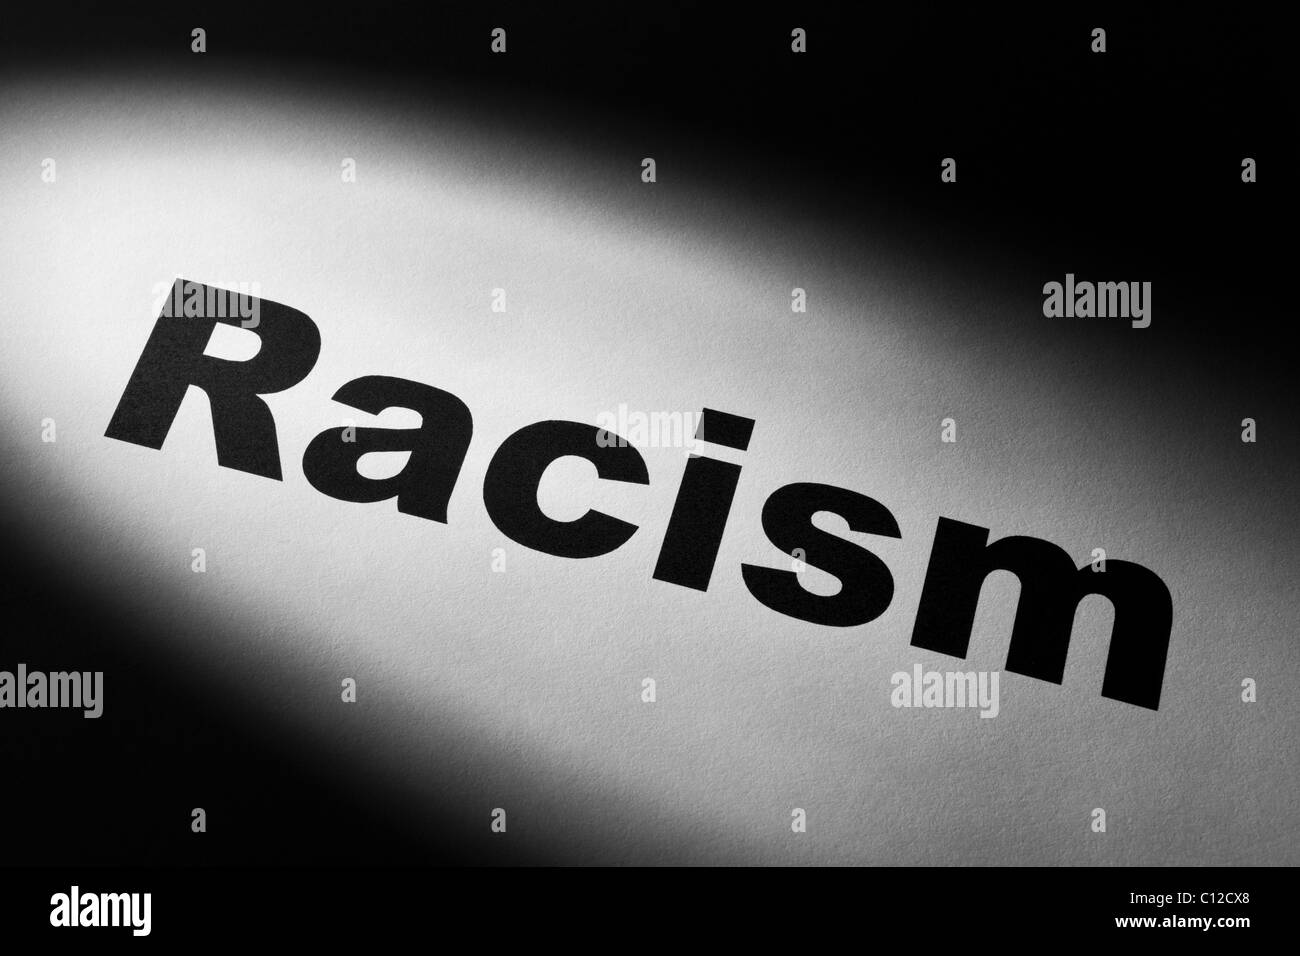 light and word of Racism for background - Stock Image